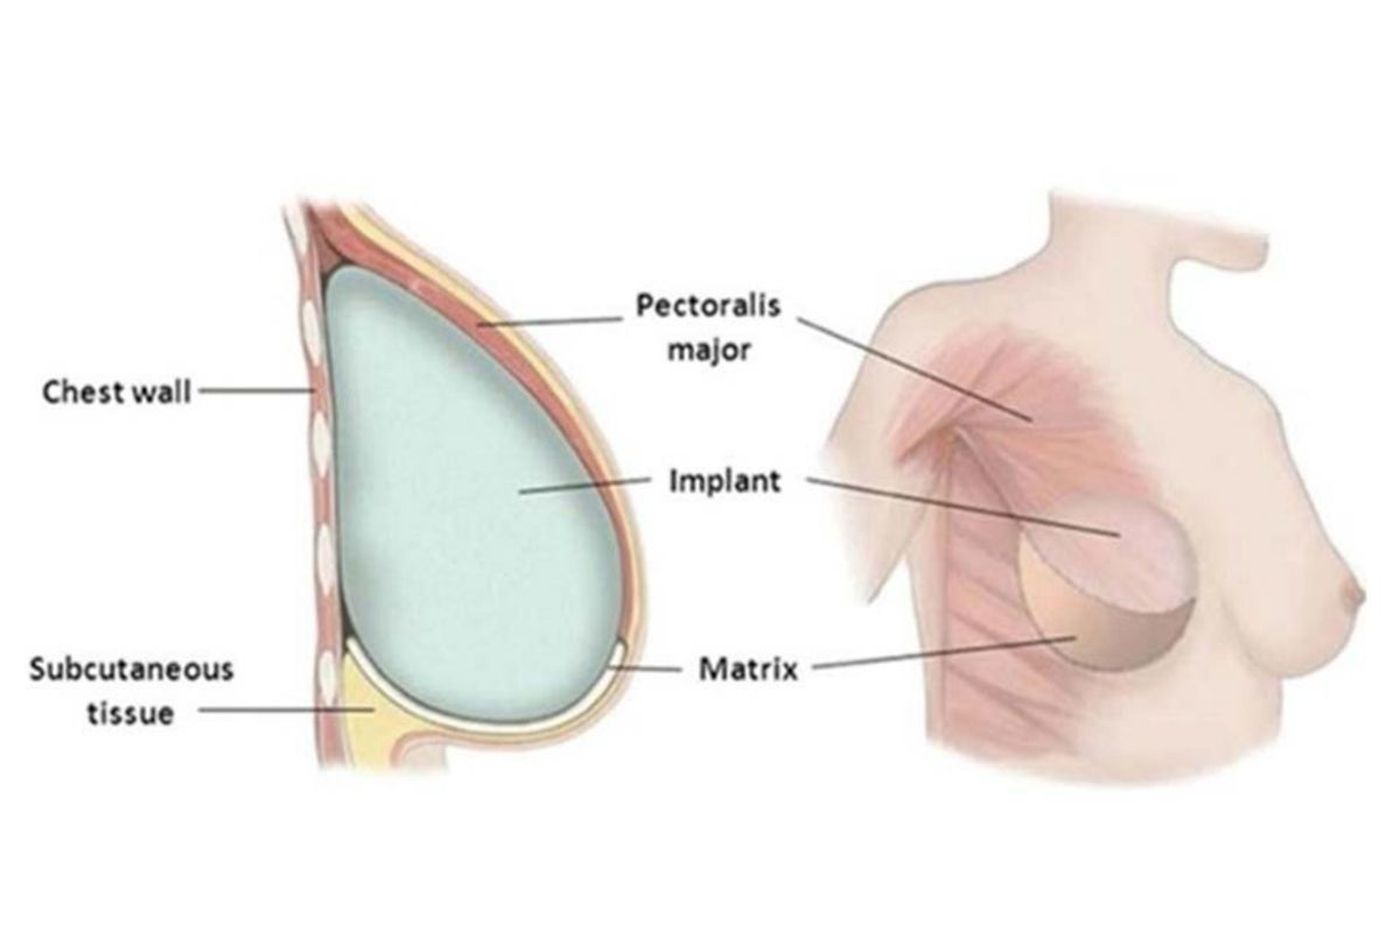 Breast reconstruction mesh may increase risks after mastectomy. FDA looks for answers.